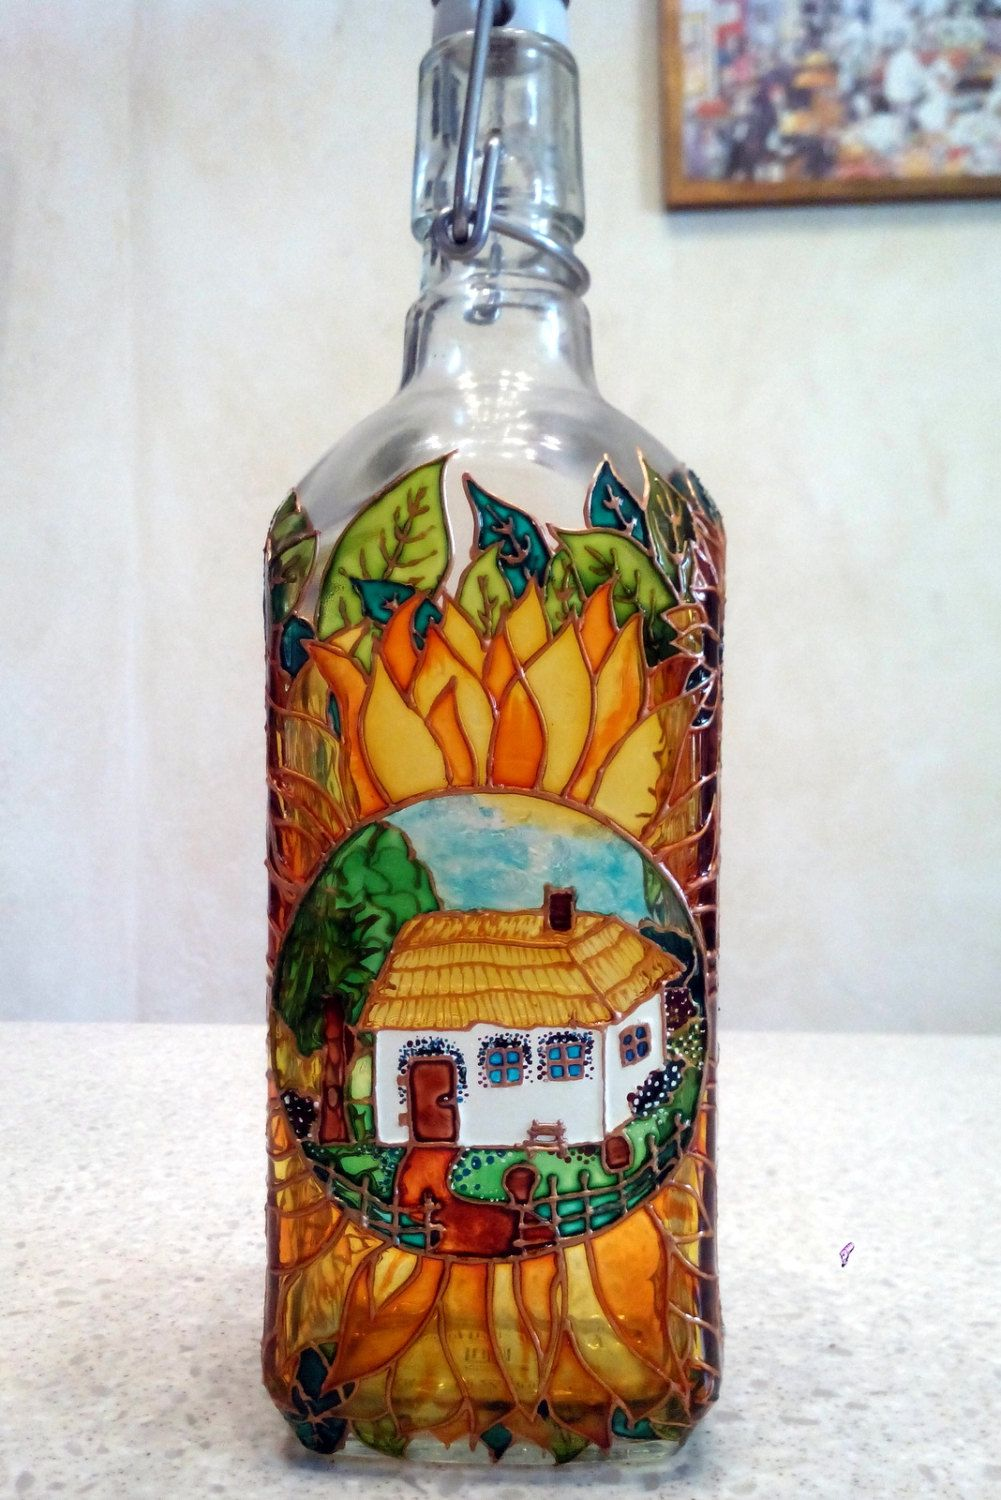 Ukrainian Style Bottle Hand Painted Glass Bottle For Oil Or Vinegar Tincture Carafe Glass Bottles Art Painted Glass Bottles Wine Bottle Crafts